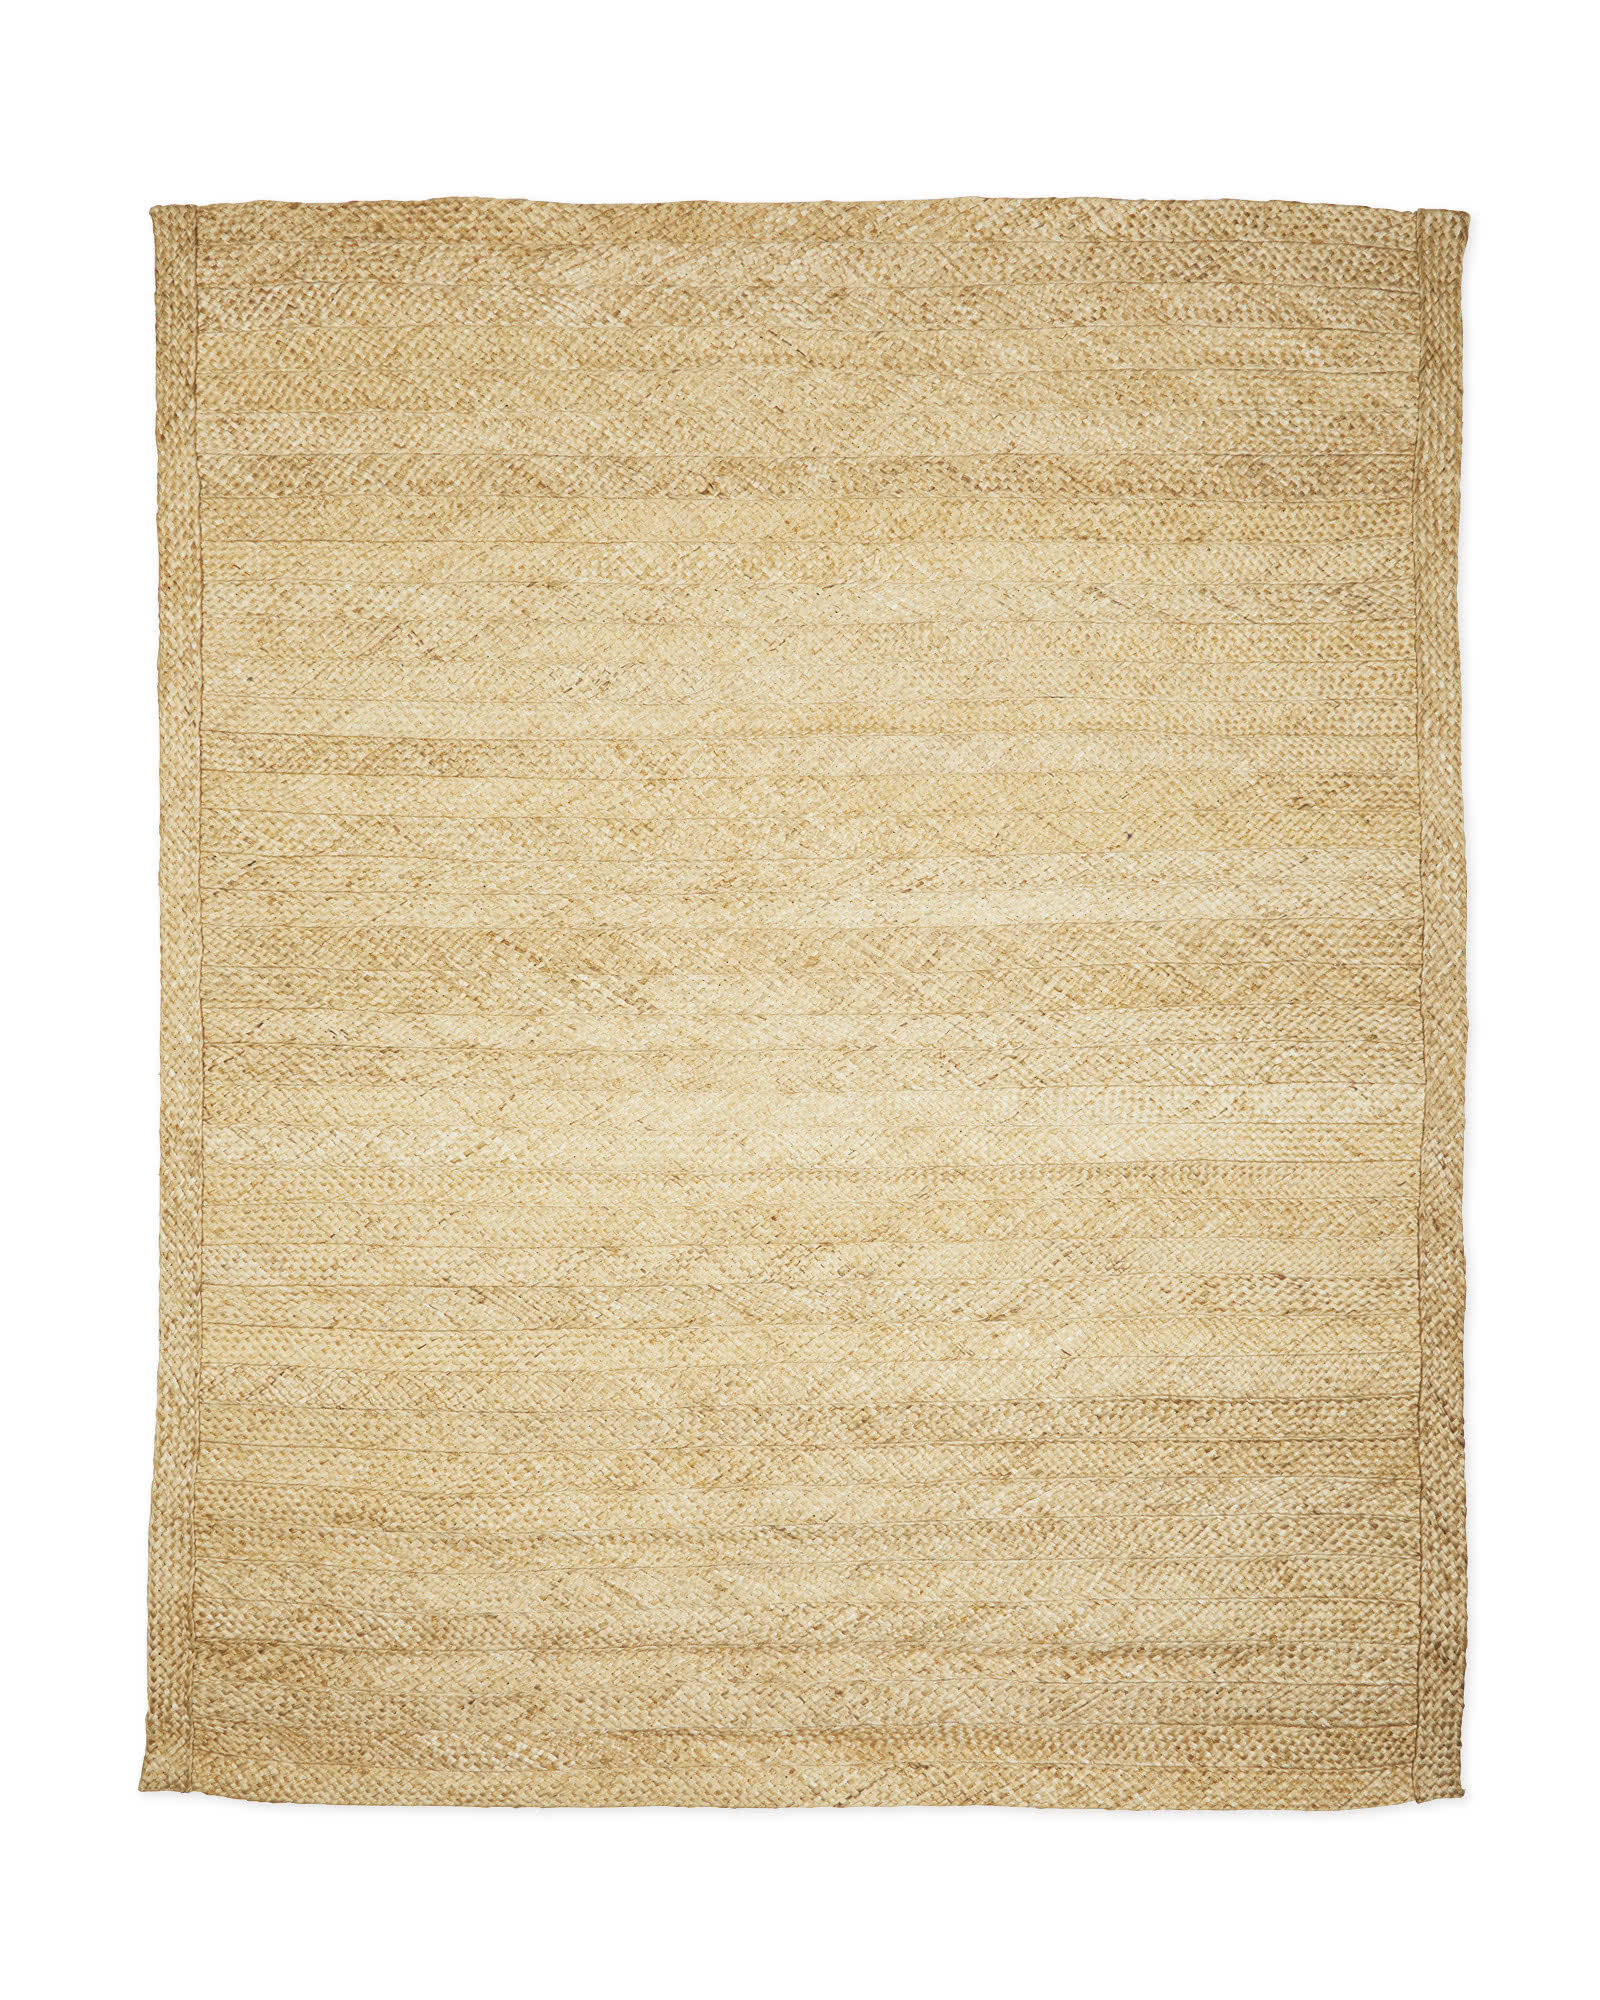 Dominica Abaca Rug,